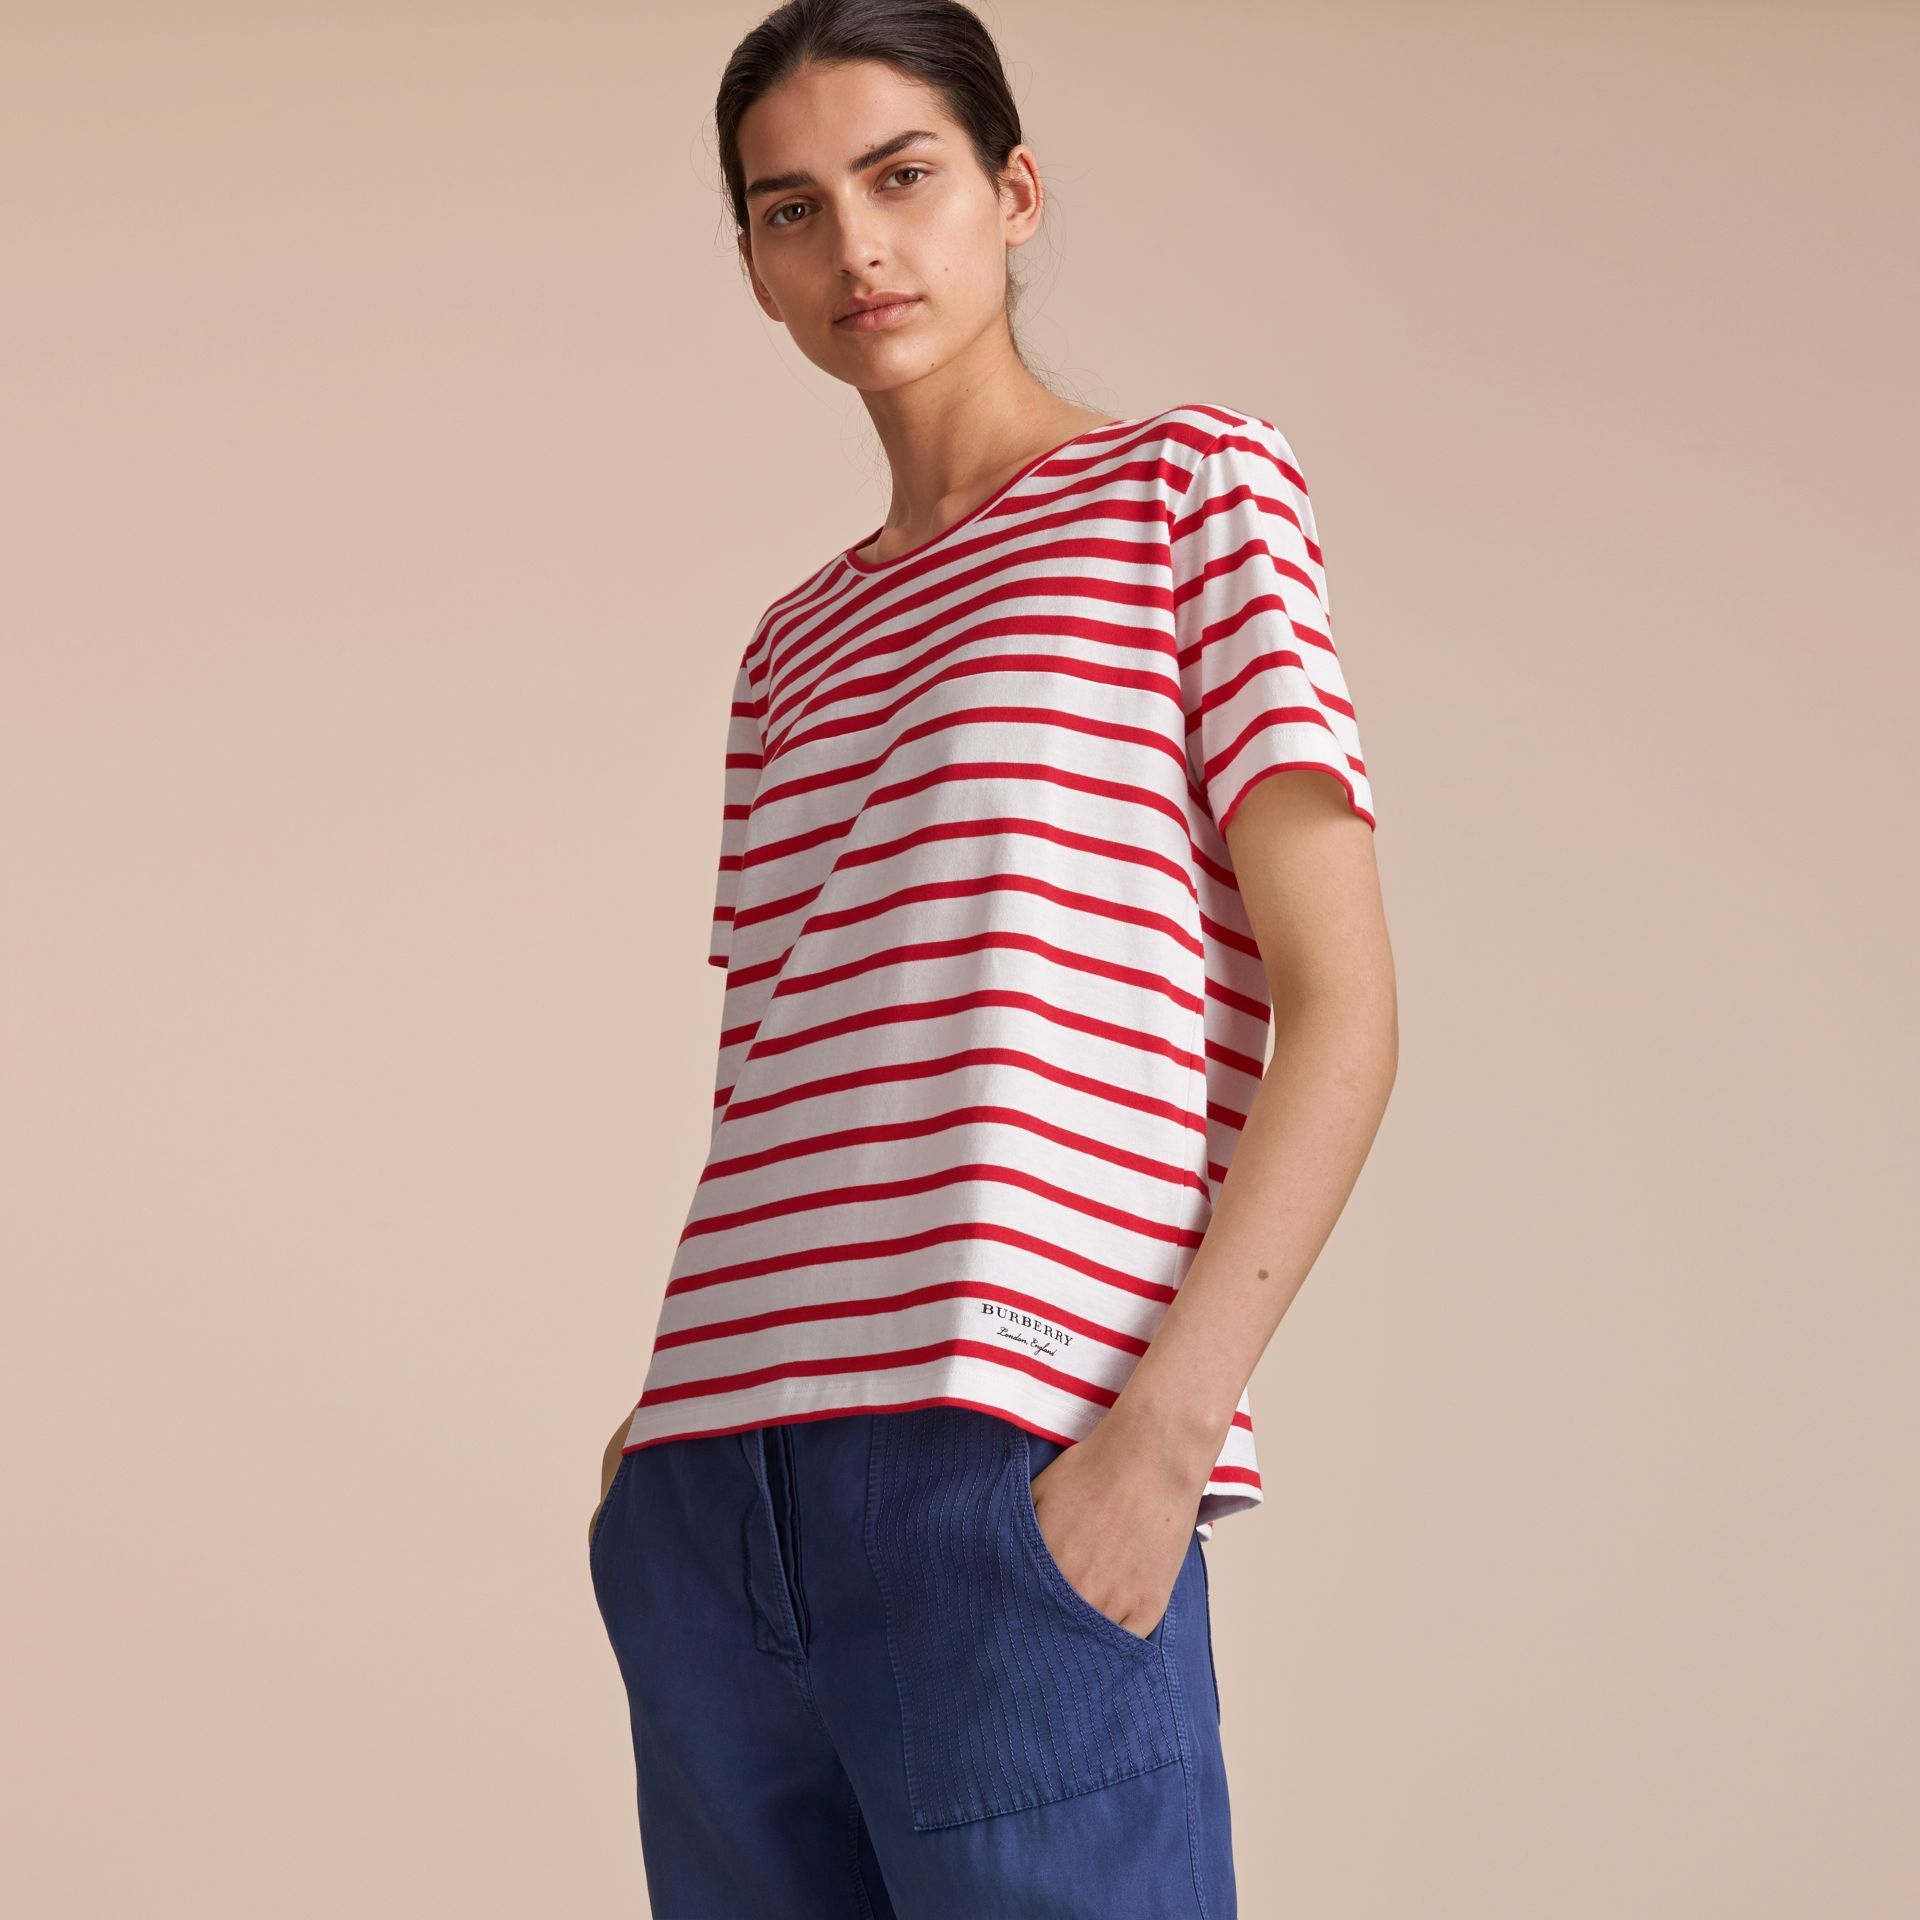 Breton Stripe Cotton T-shirt in Military Red/white - Women | Burberry Canada - gallery image 6